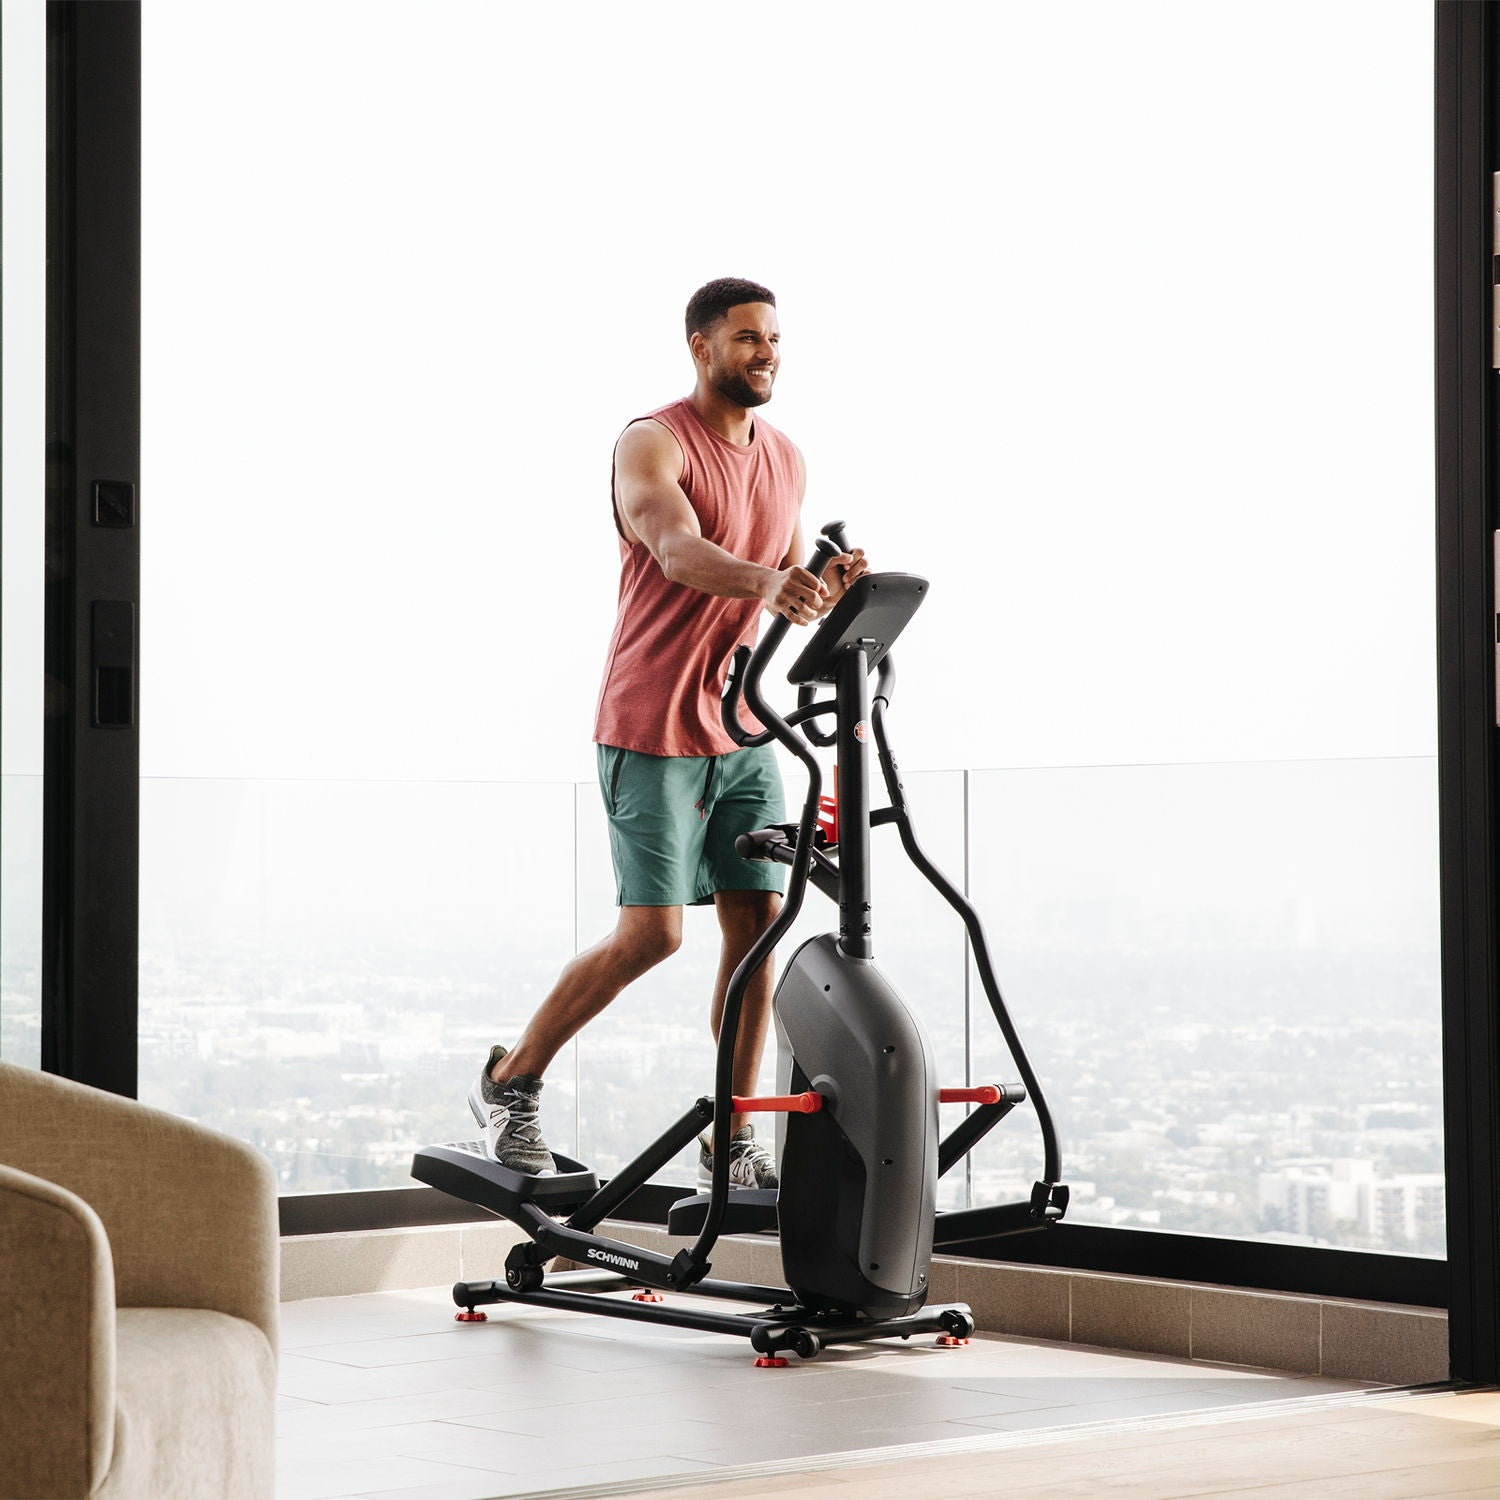 Southern Cross Fitness — Buy Gym Elliptical Equipment Online